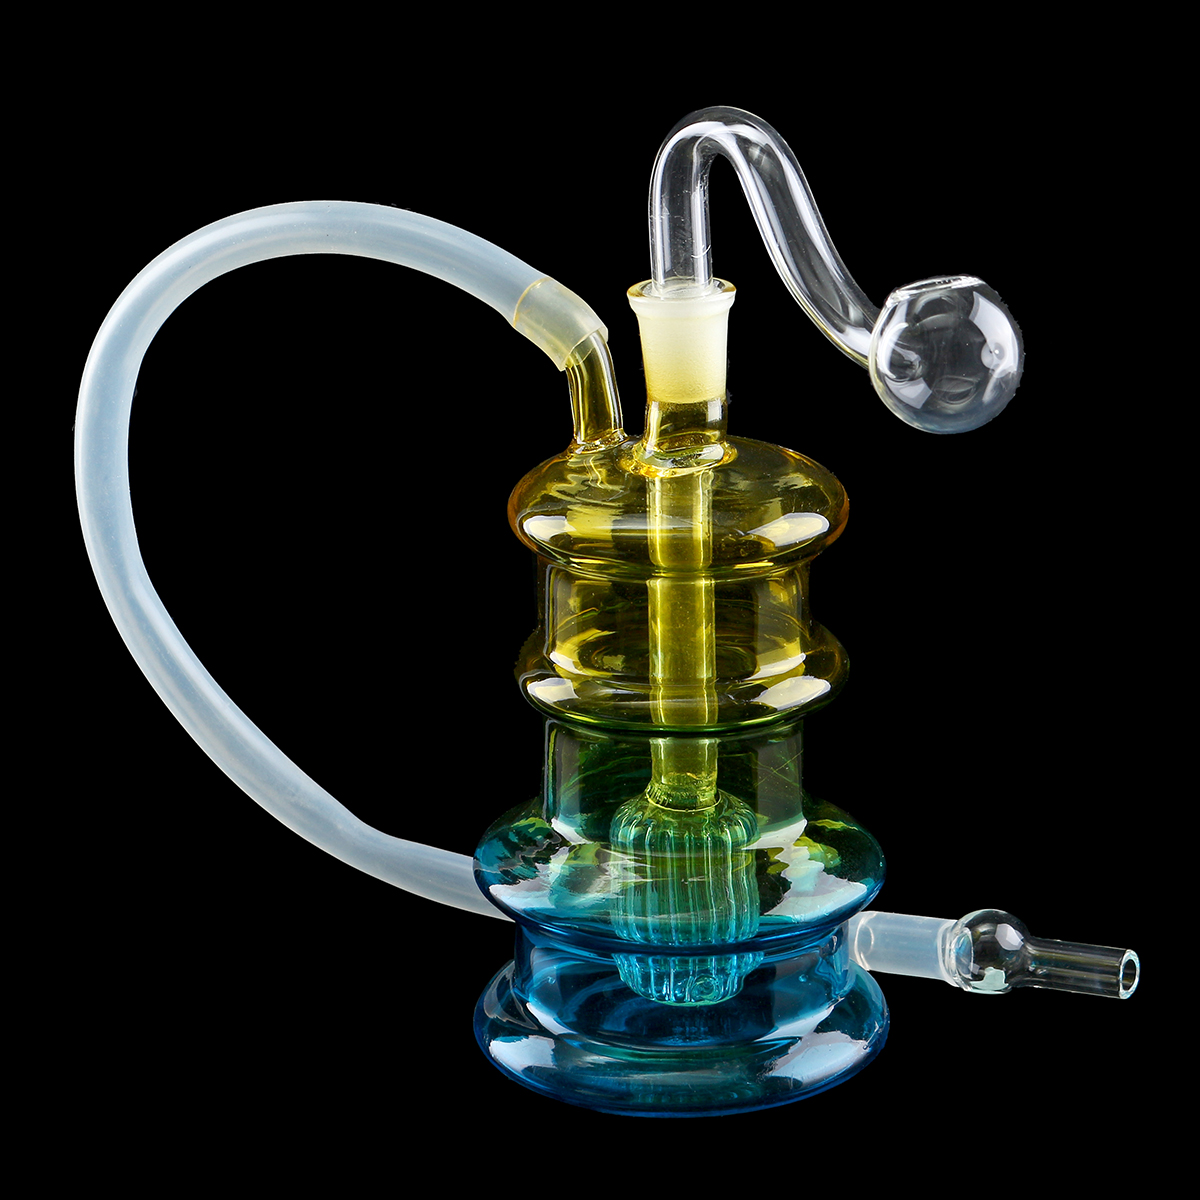 Glass Water Filter Pipe Colorful Pipe Smoking T obacco H erbal C igarette Pipes